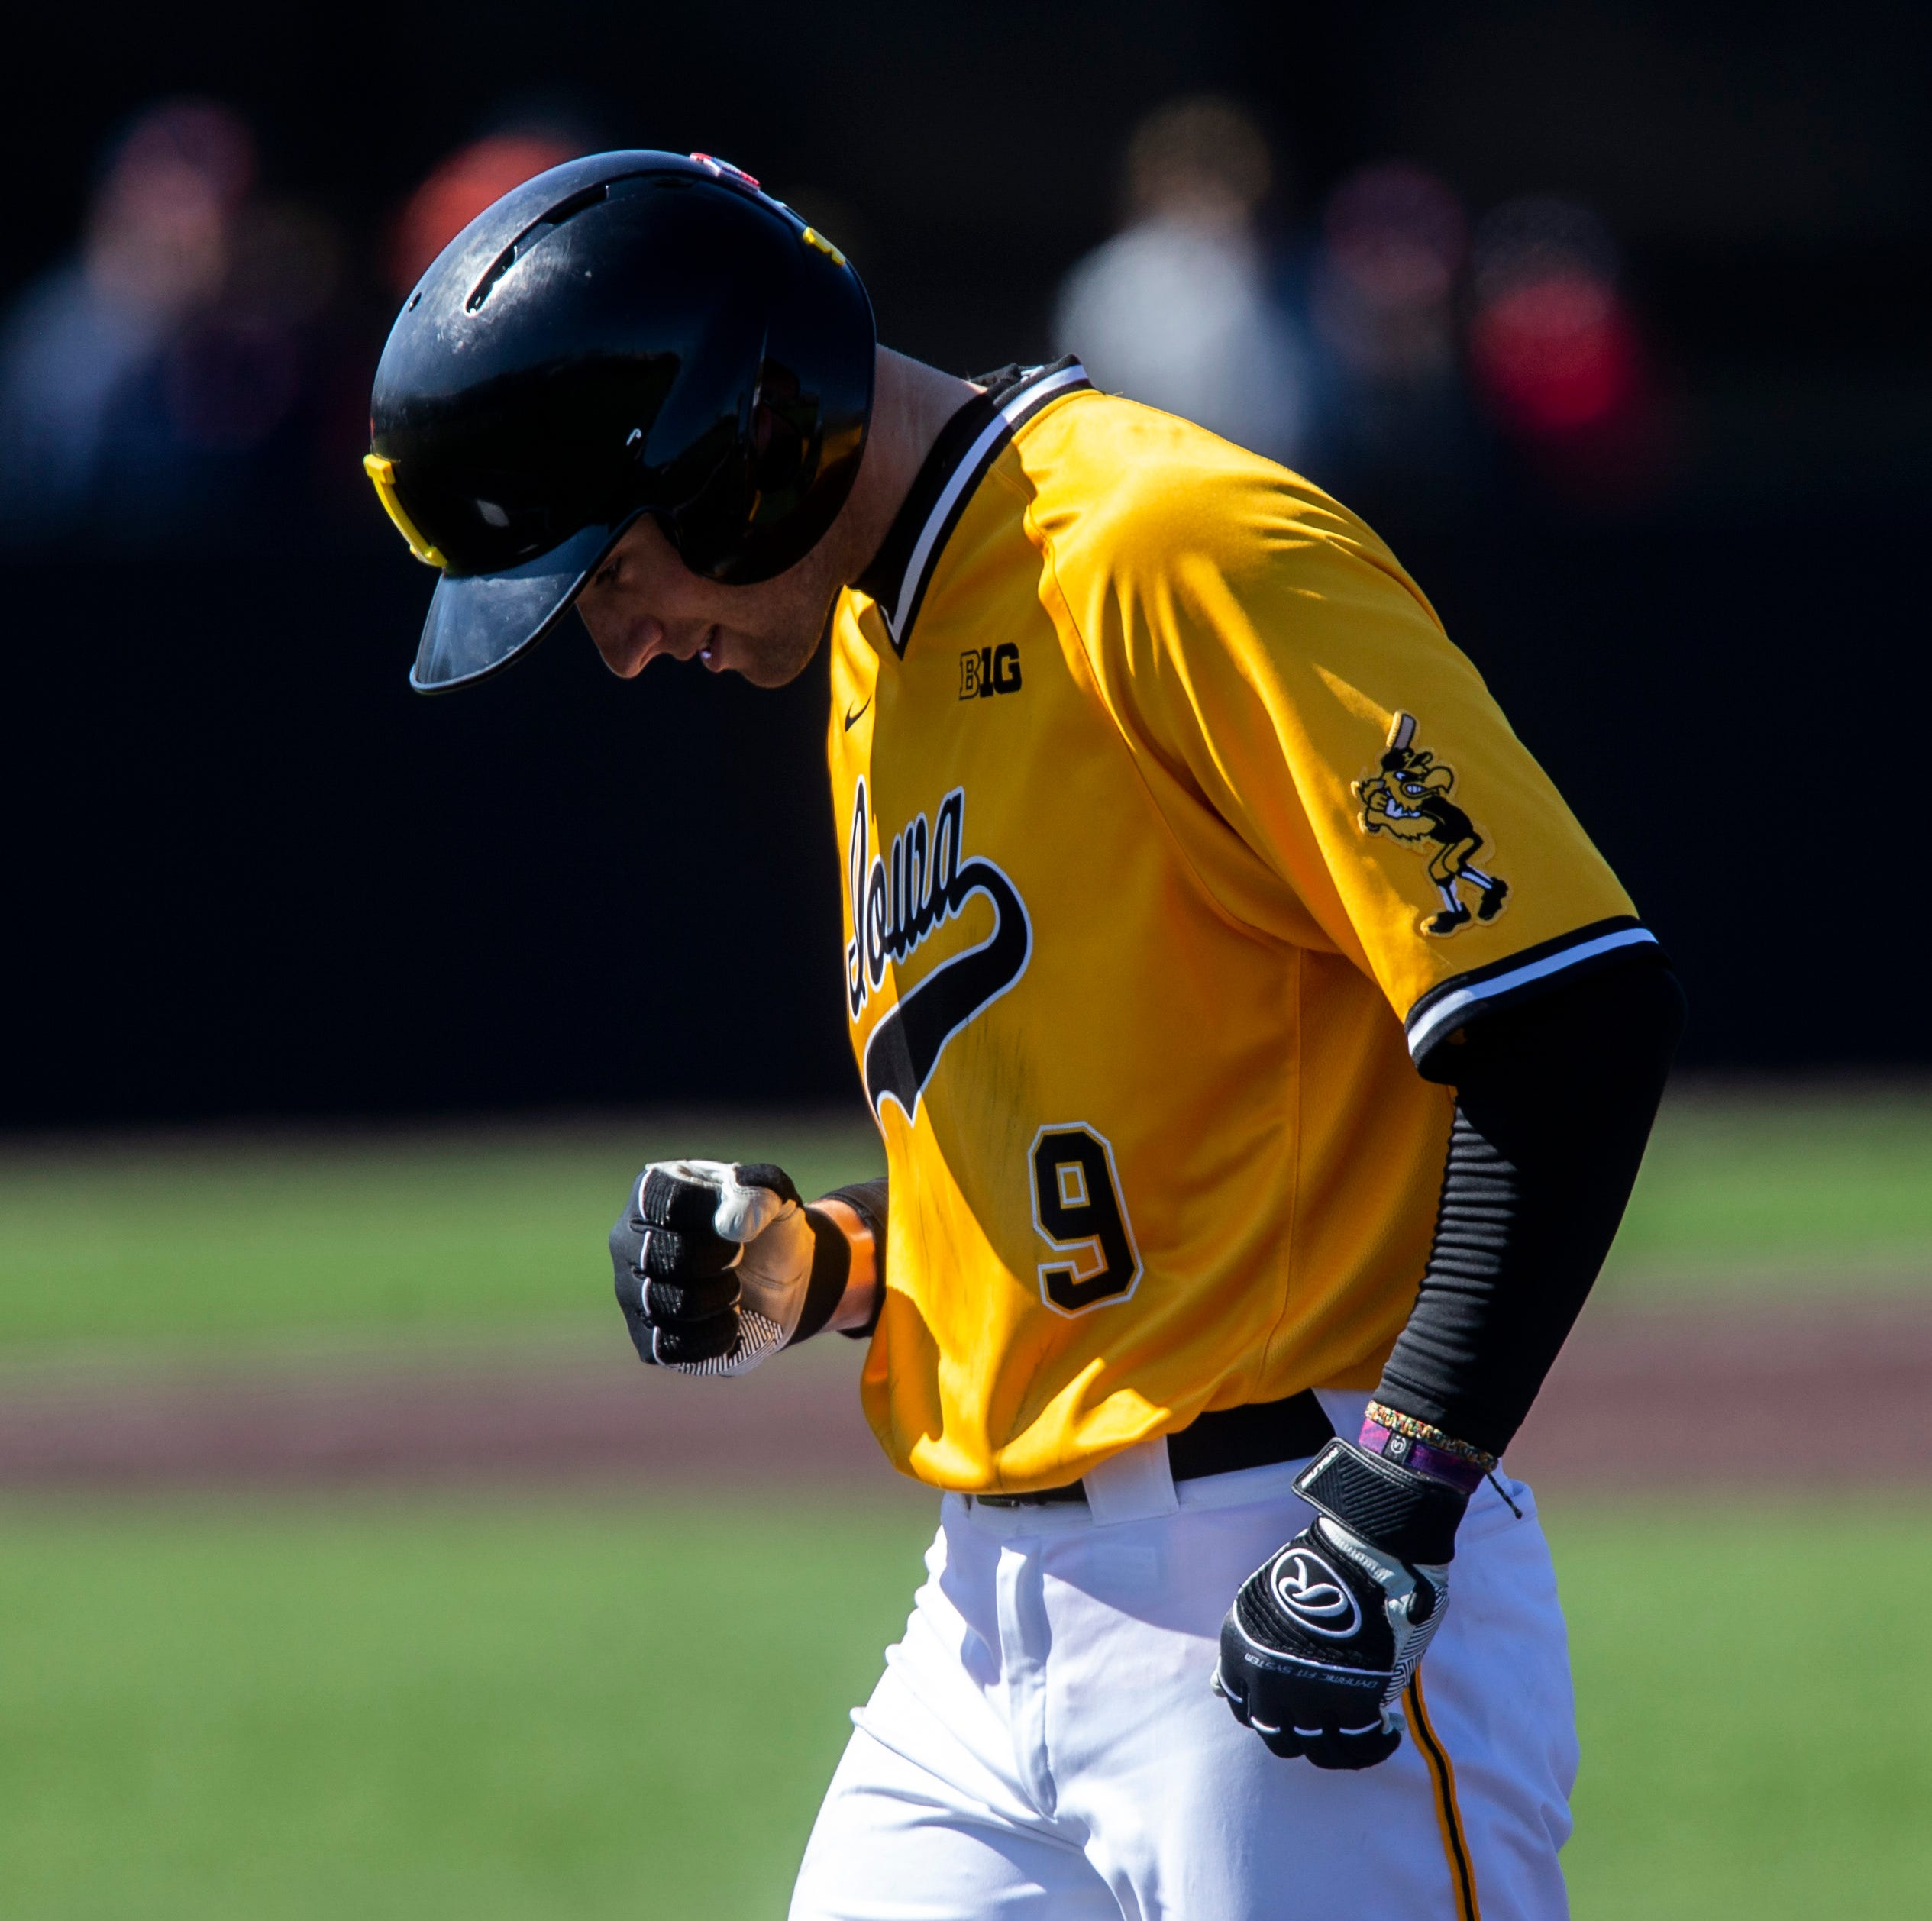 Iowa baseball: Big eighth lifts Hawkeyes to doubleheader split, series win over Purdue